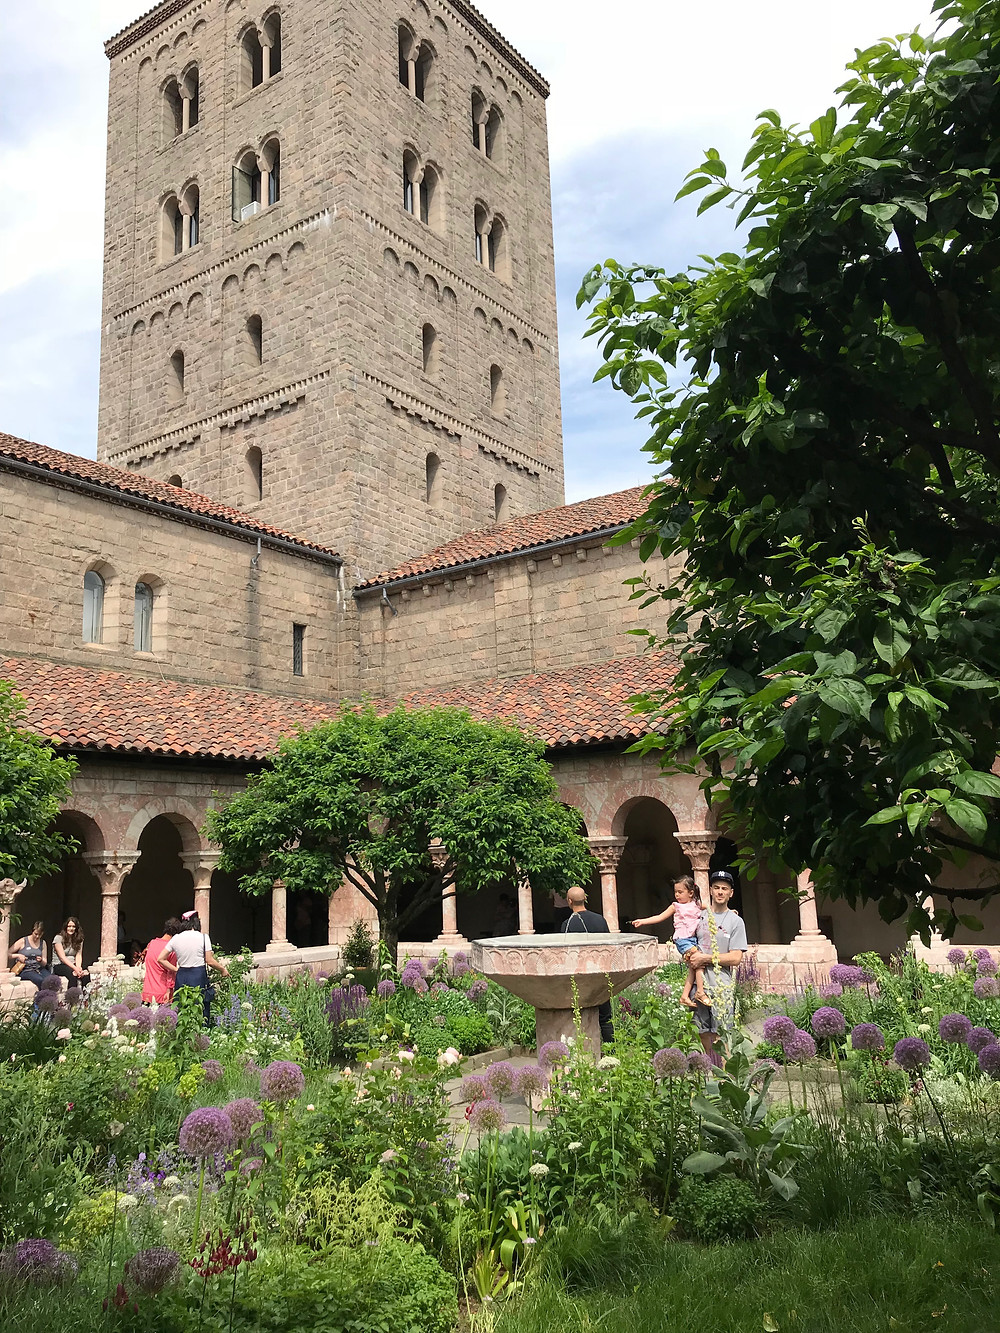 The Met Cloisters, The Cloisters, Fort Tryon Park, Summer bucket list, New York City with kids, nyc bucket list, nyc with kids, things to do this summer with kids, Curious G and Me, NYC summer, beyond the beach, Camp Mommy, NYC family, NYC Summer Entertainment Guide for Kids, Summer fun NYC, NYC parents, NYC kids, NYC Mom Blogger, Manhattan Mom